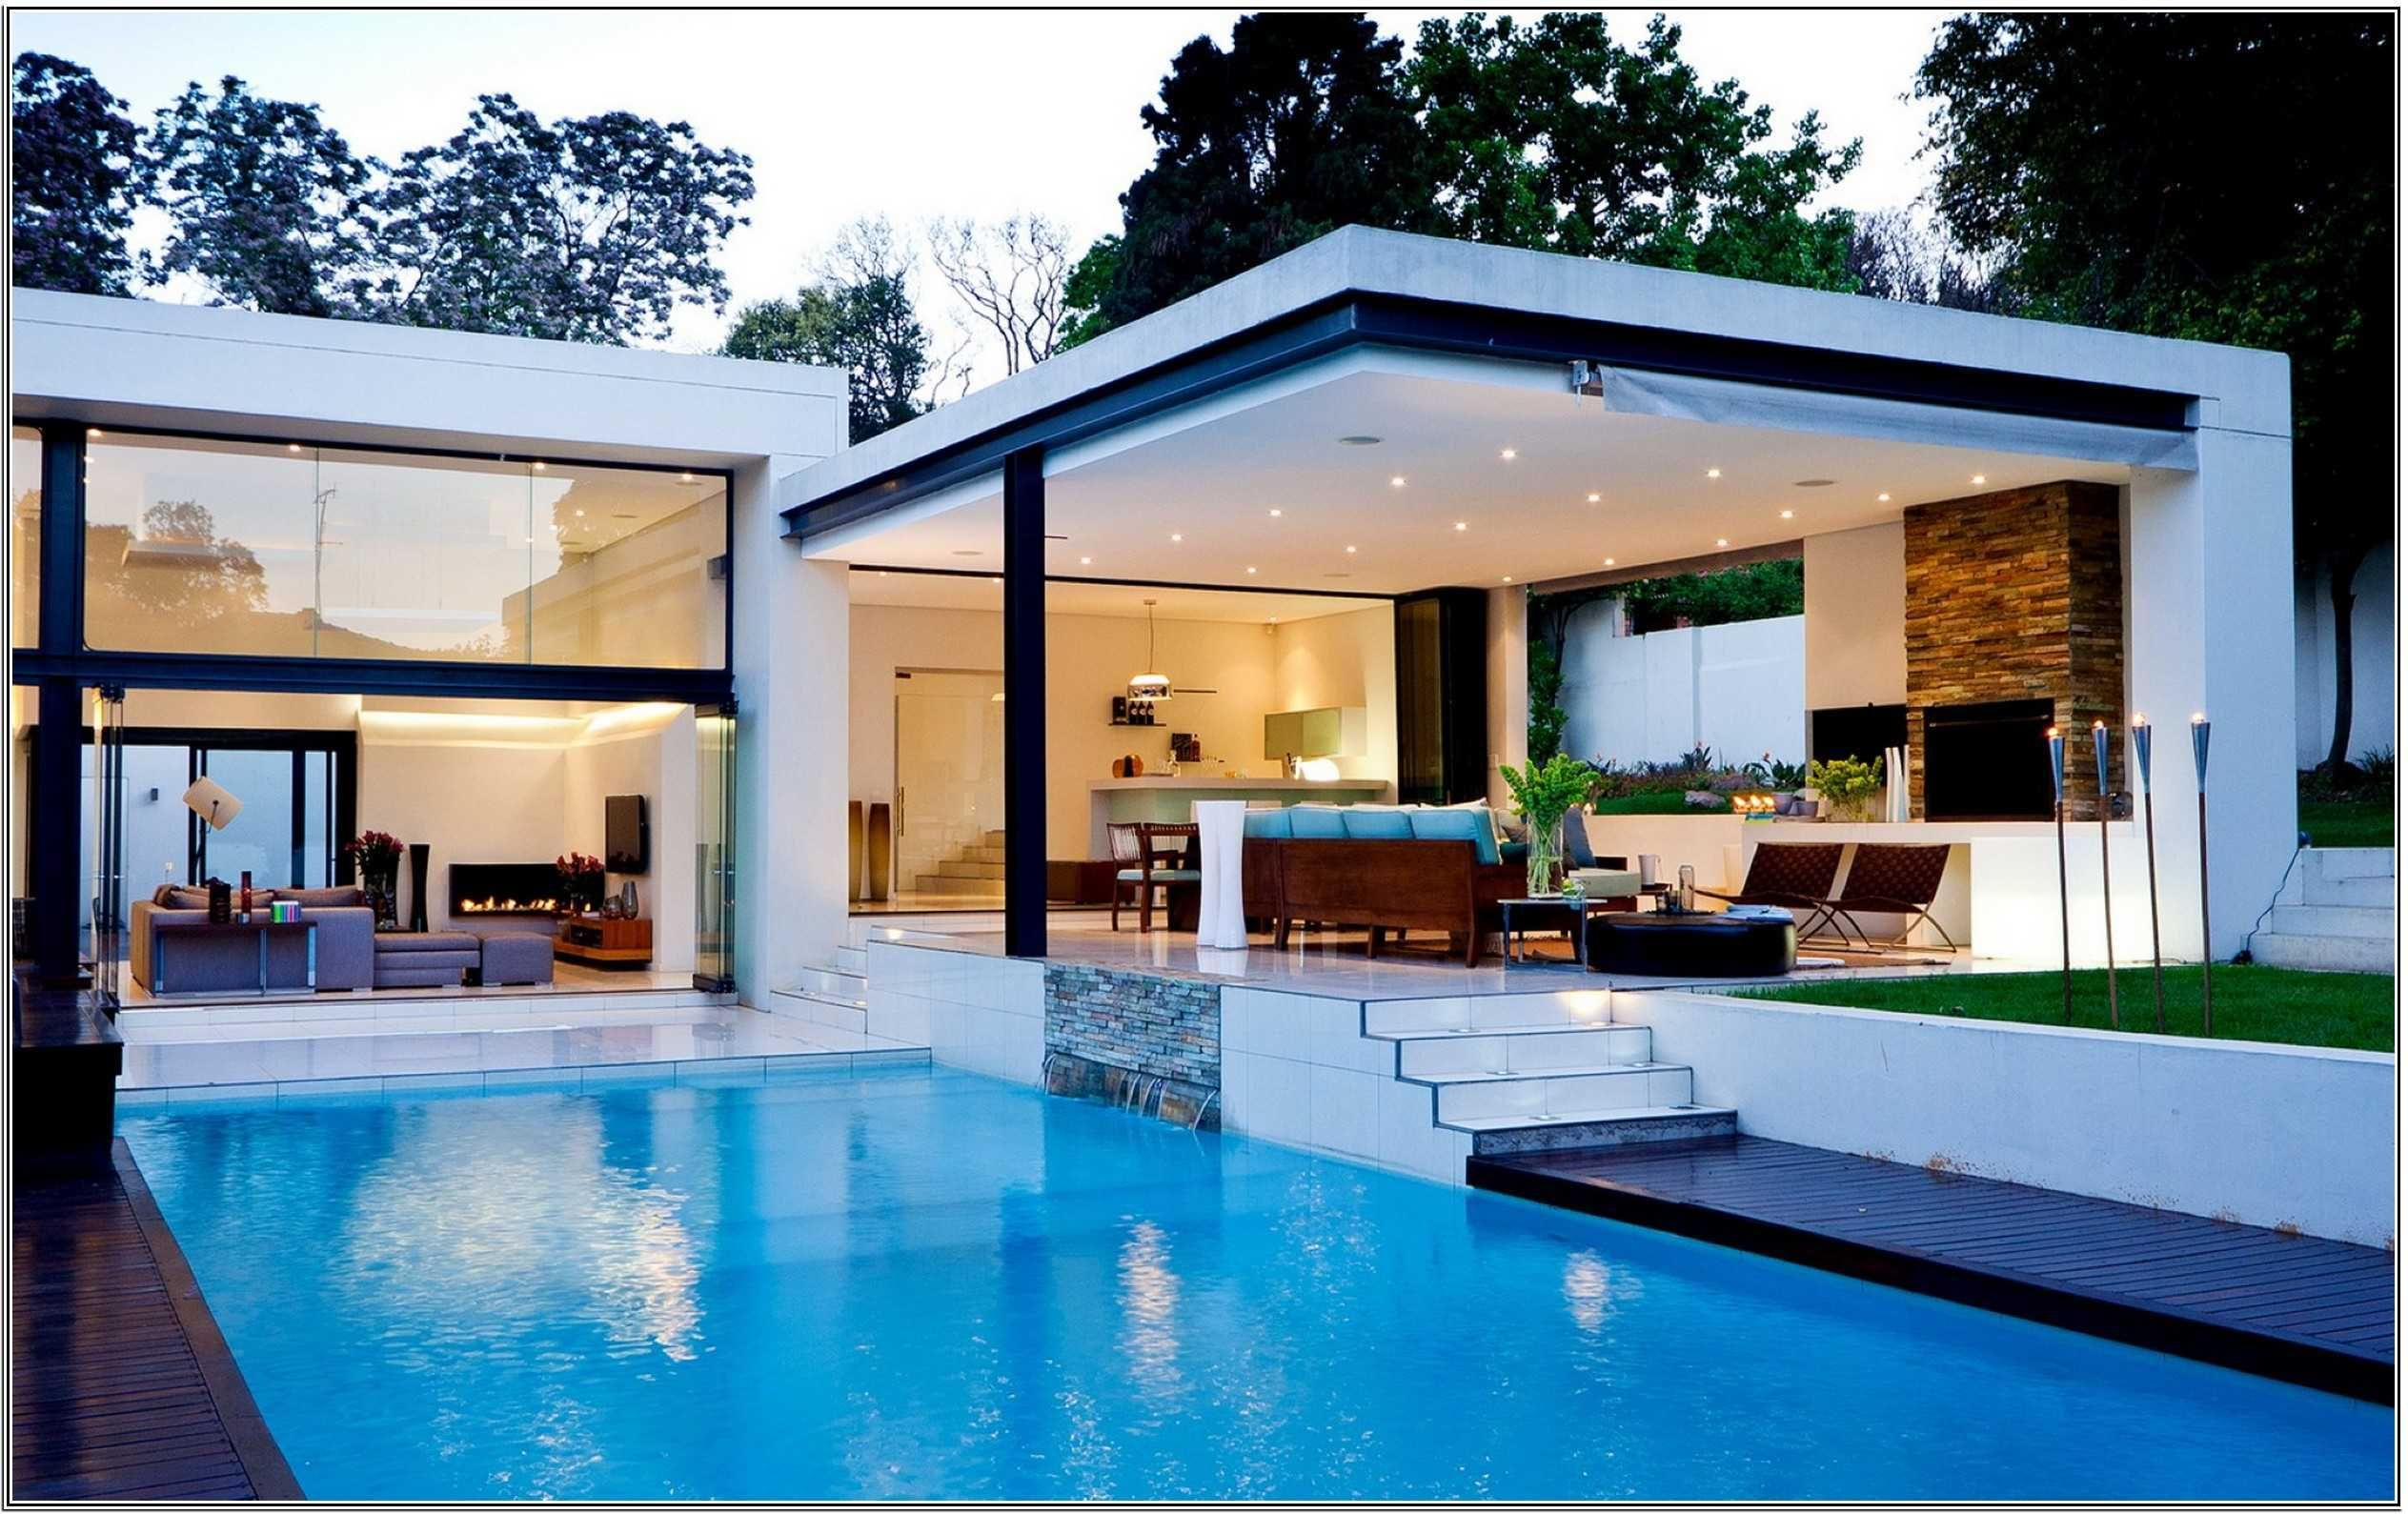 Image result for pool inspirations (With images) | Pool ...